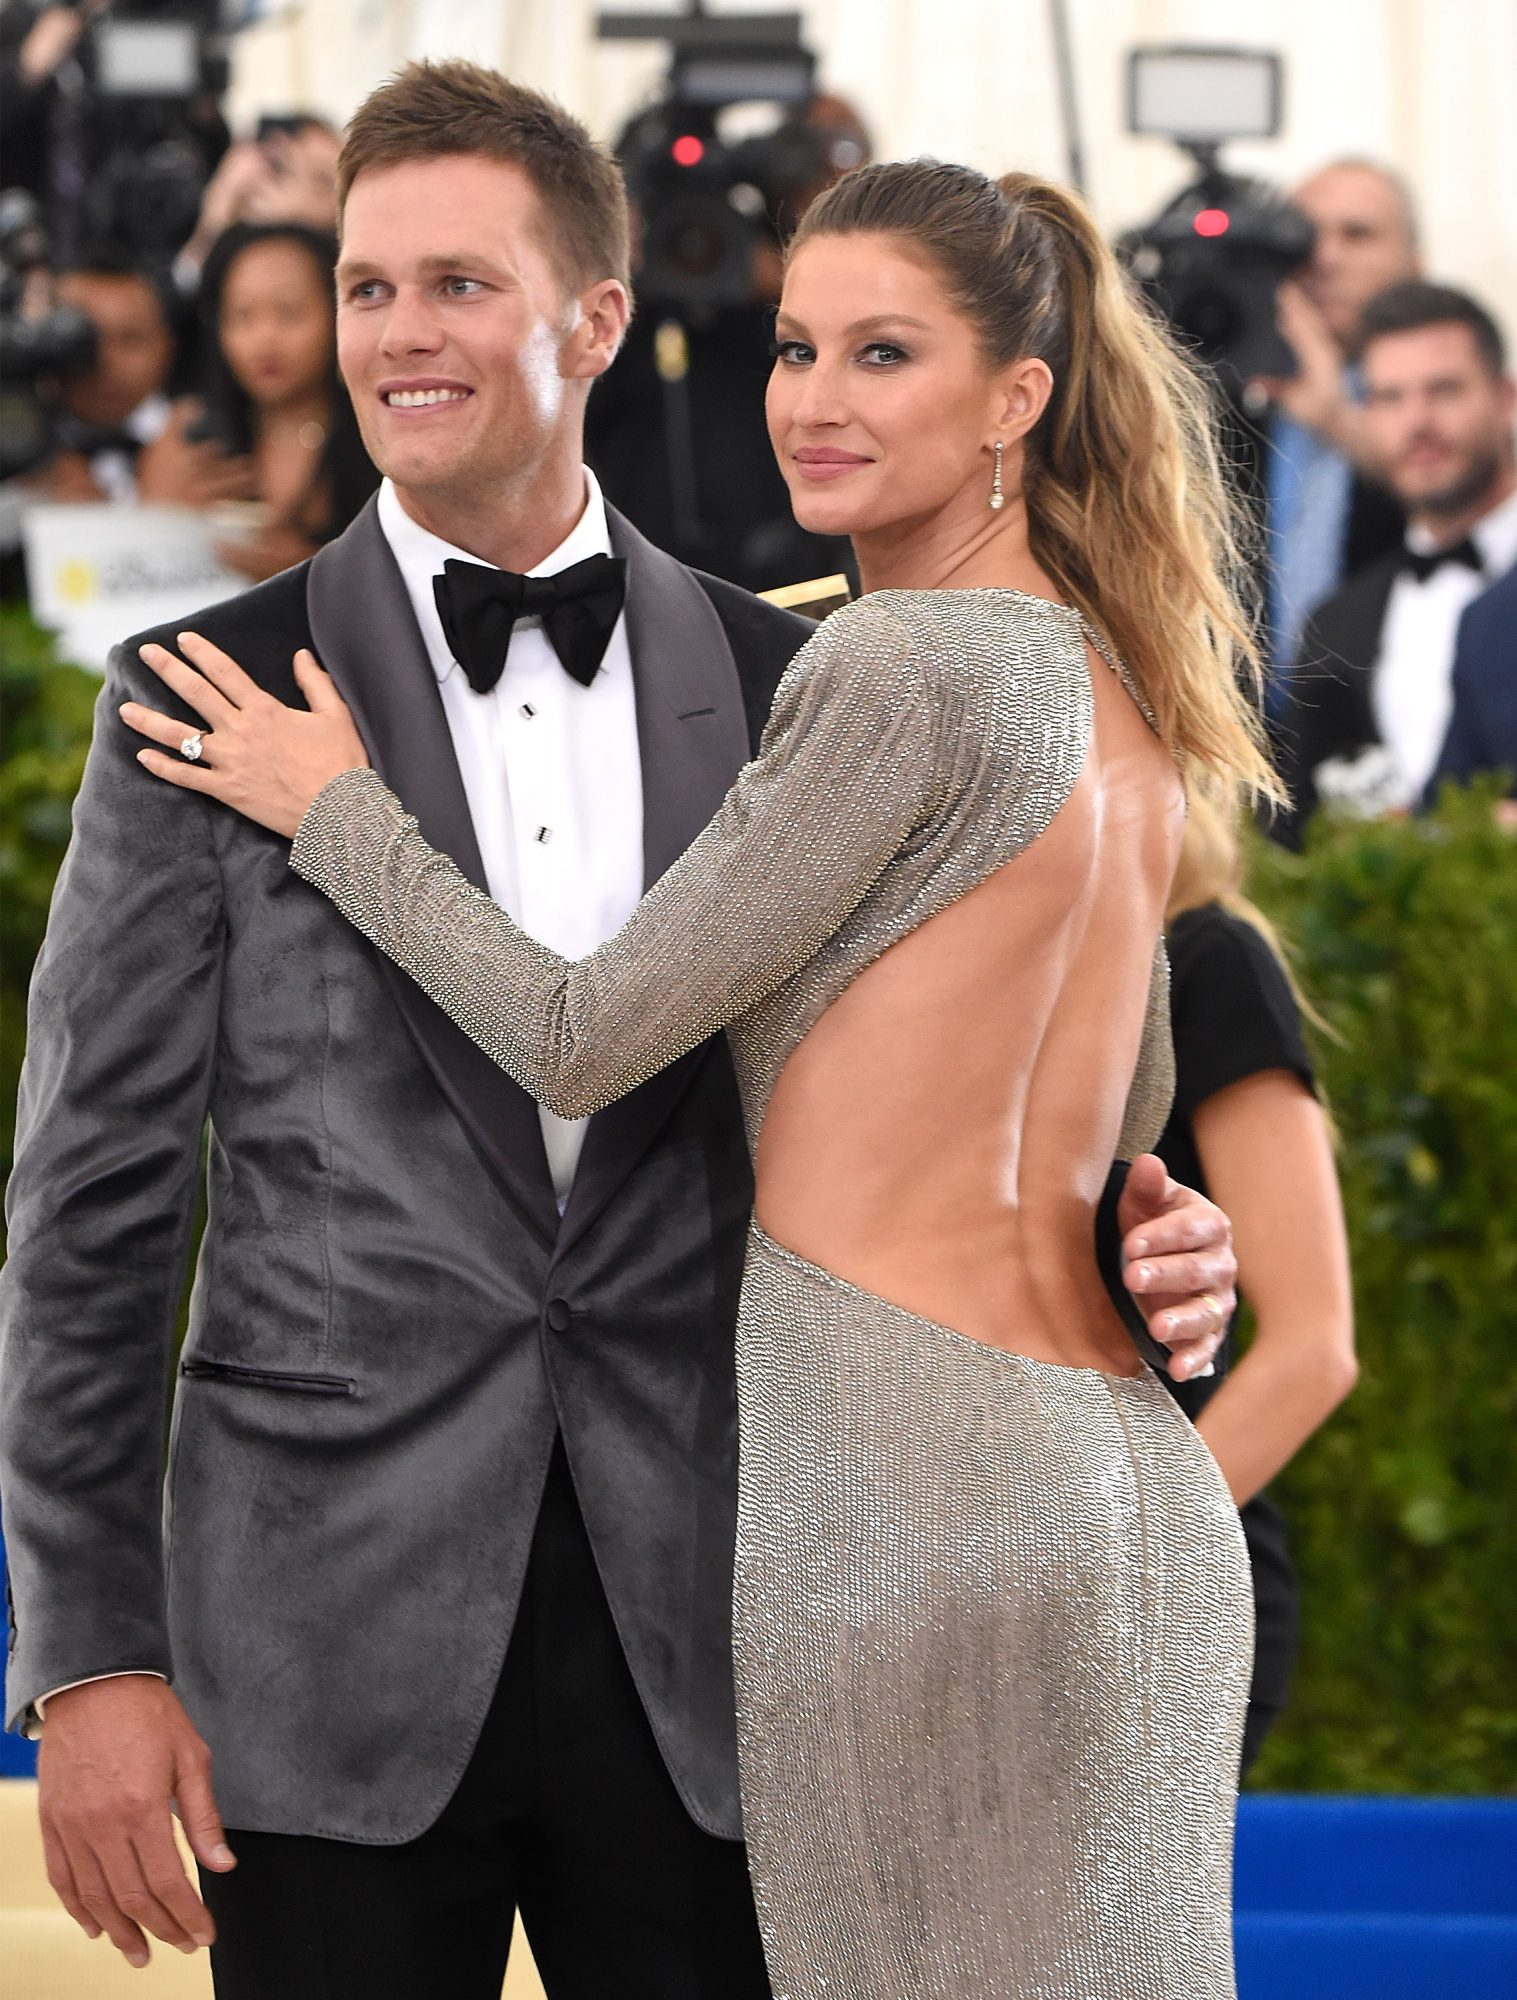 Gisele Bündchen and Tom Brady Share Never-Before-Seen Wedding Photos on Their 9th Anniversary